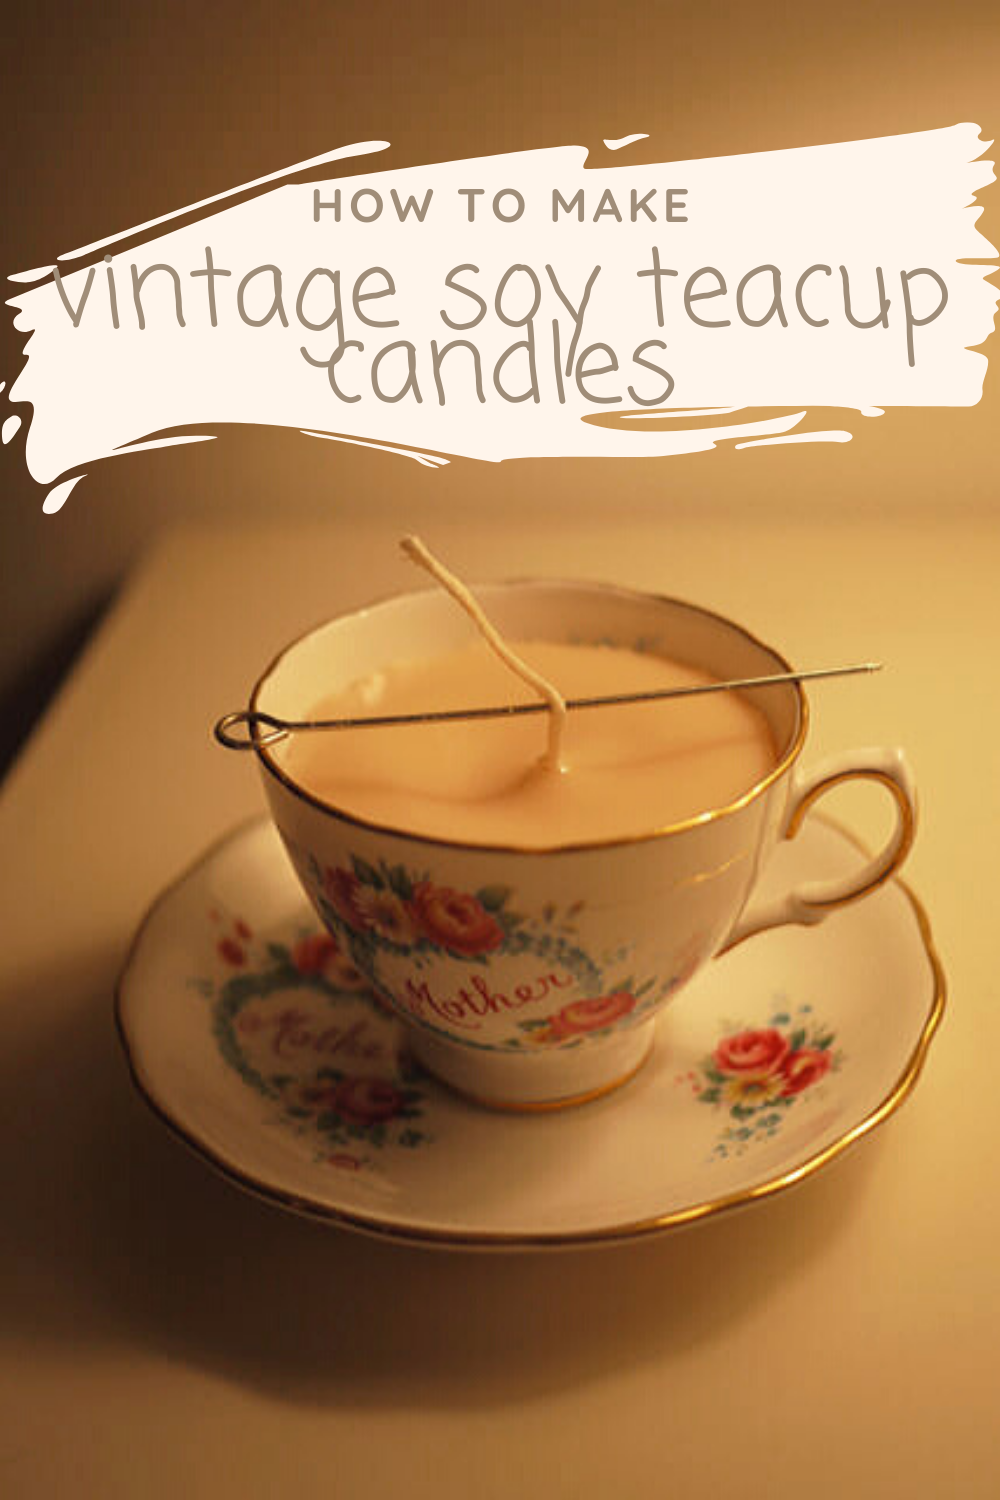 How to make Soy Teacup Candles